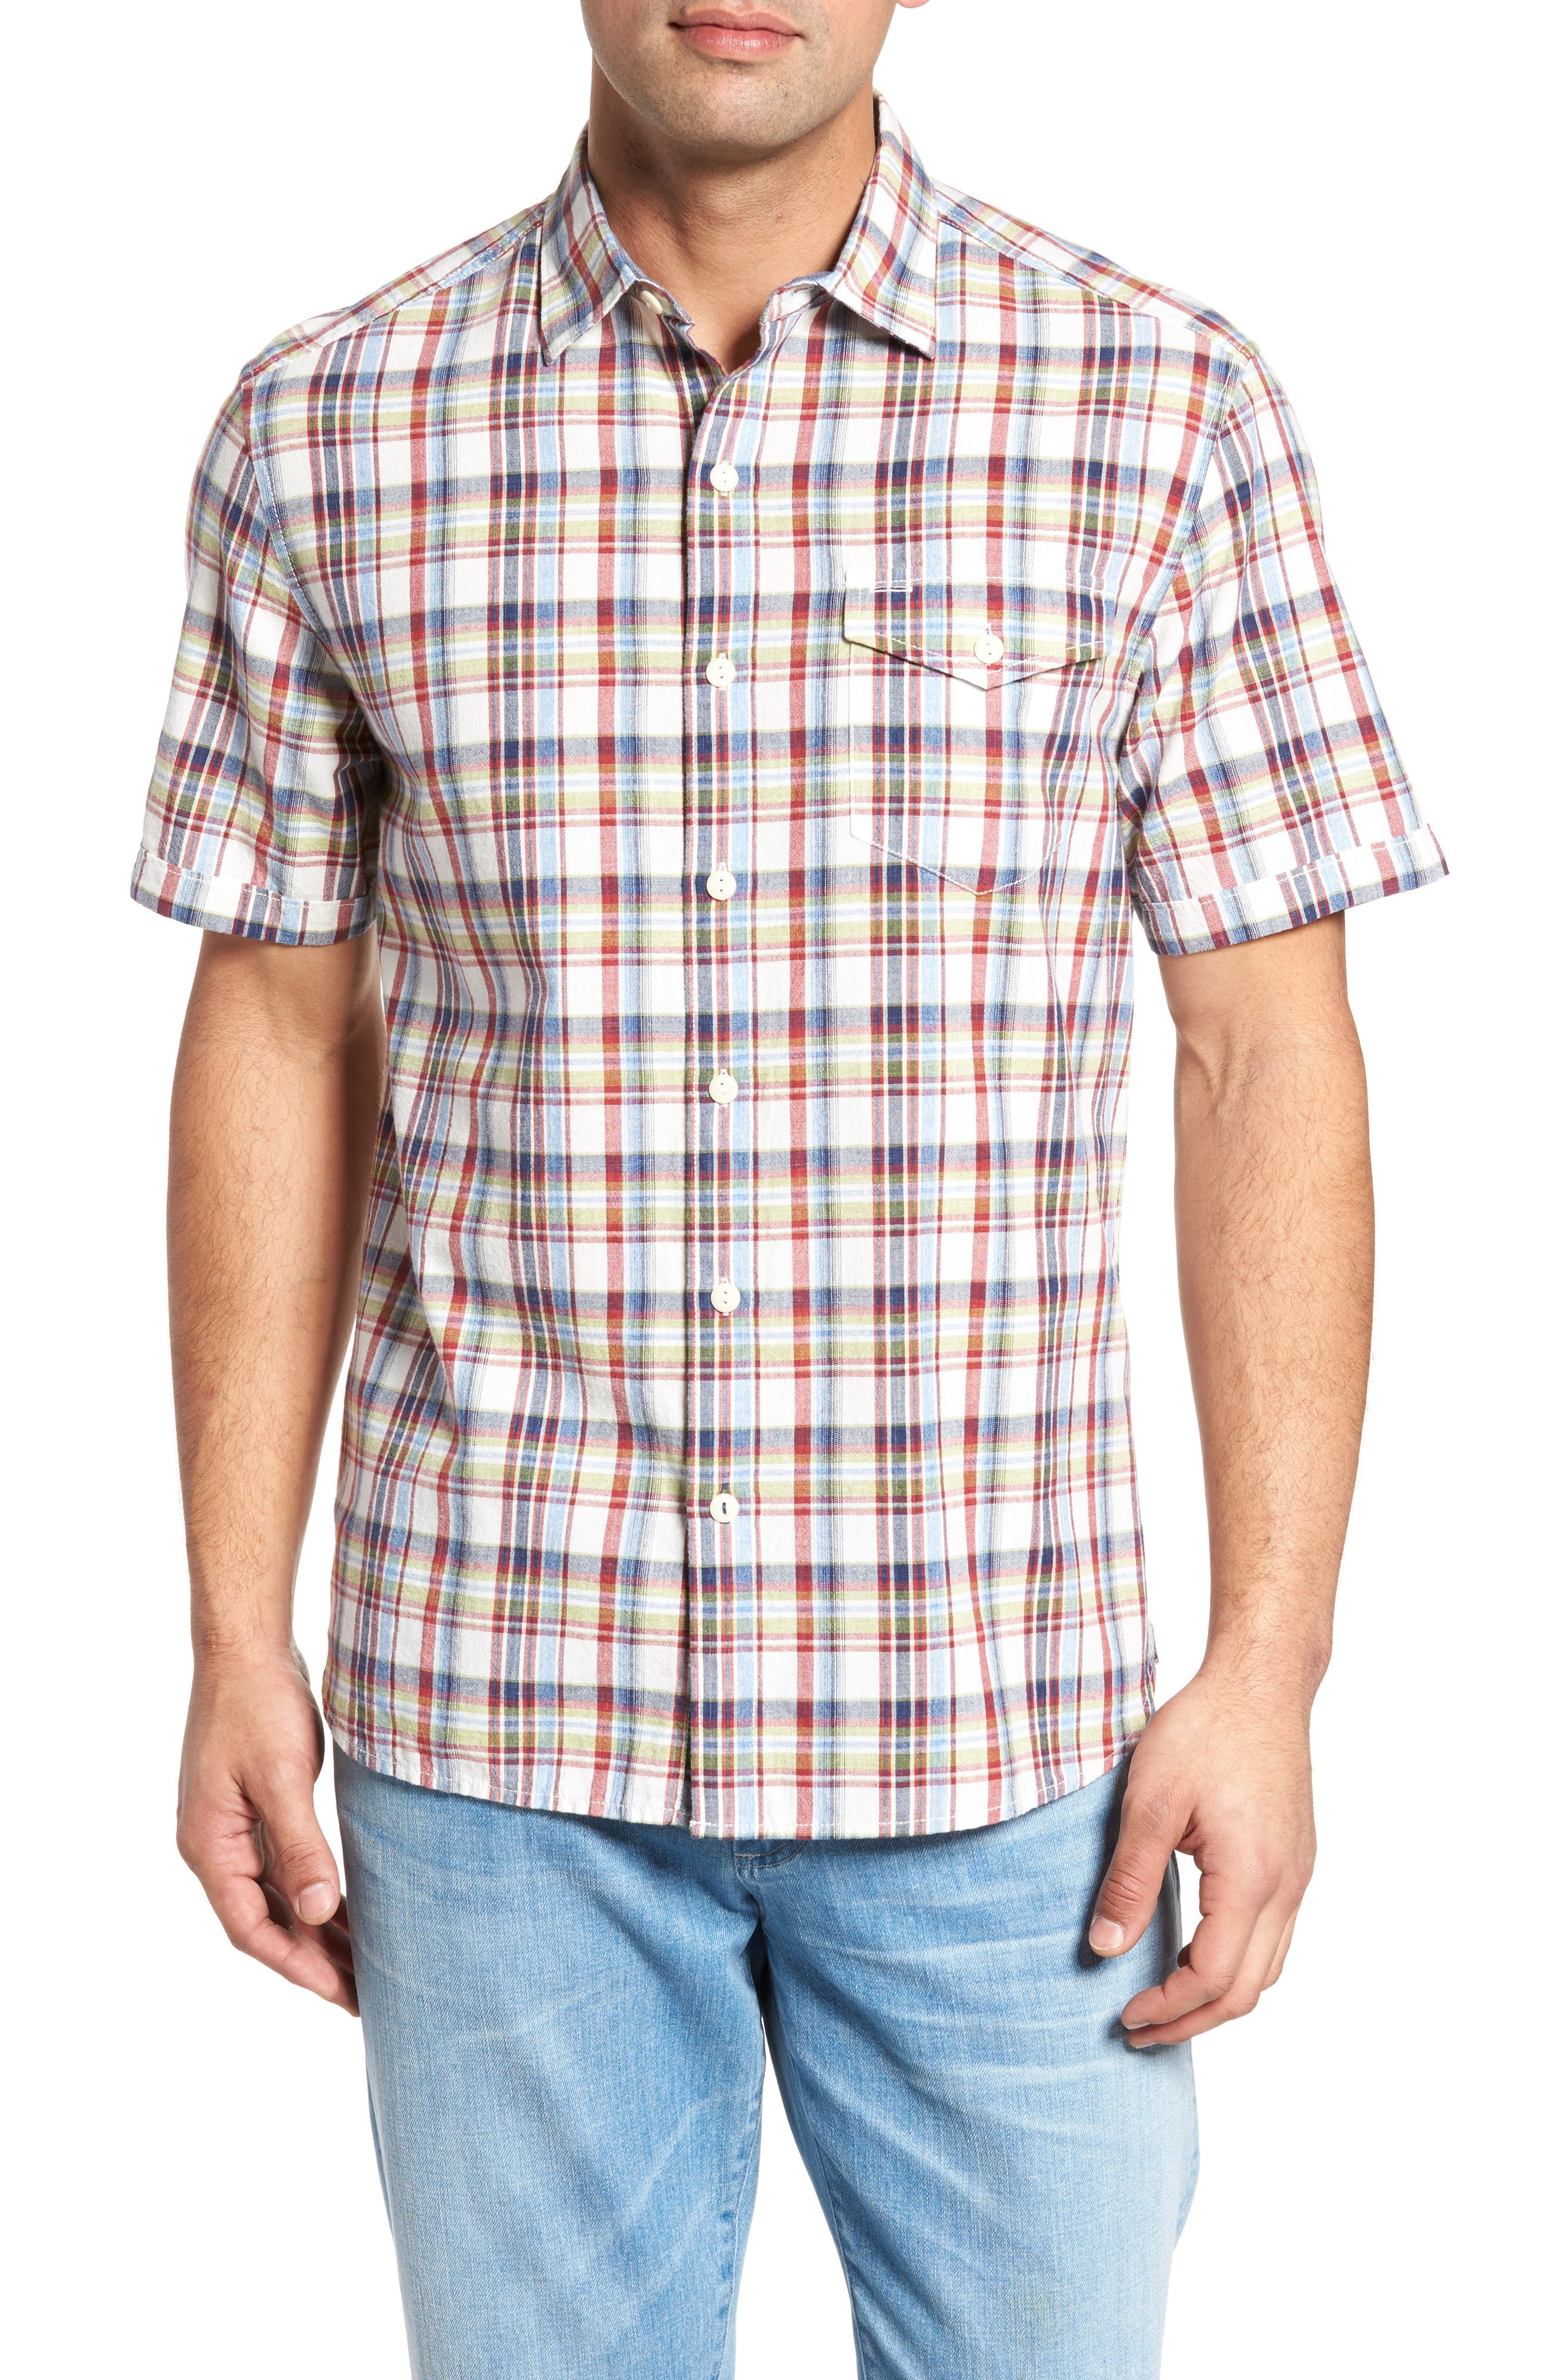 Alternate Image 1 Selected - Tommy Bahama Ocean Cay Plaid Sport Shirt